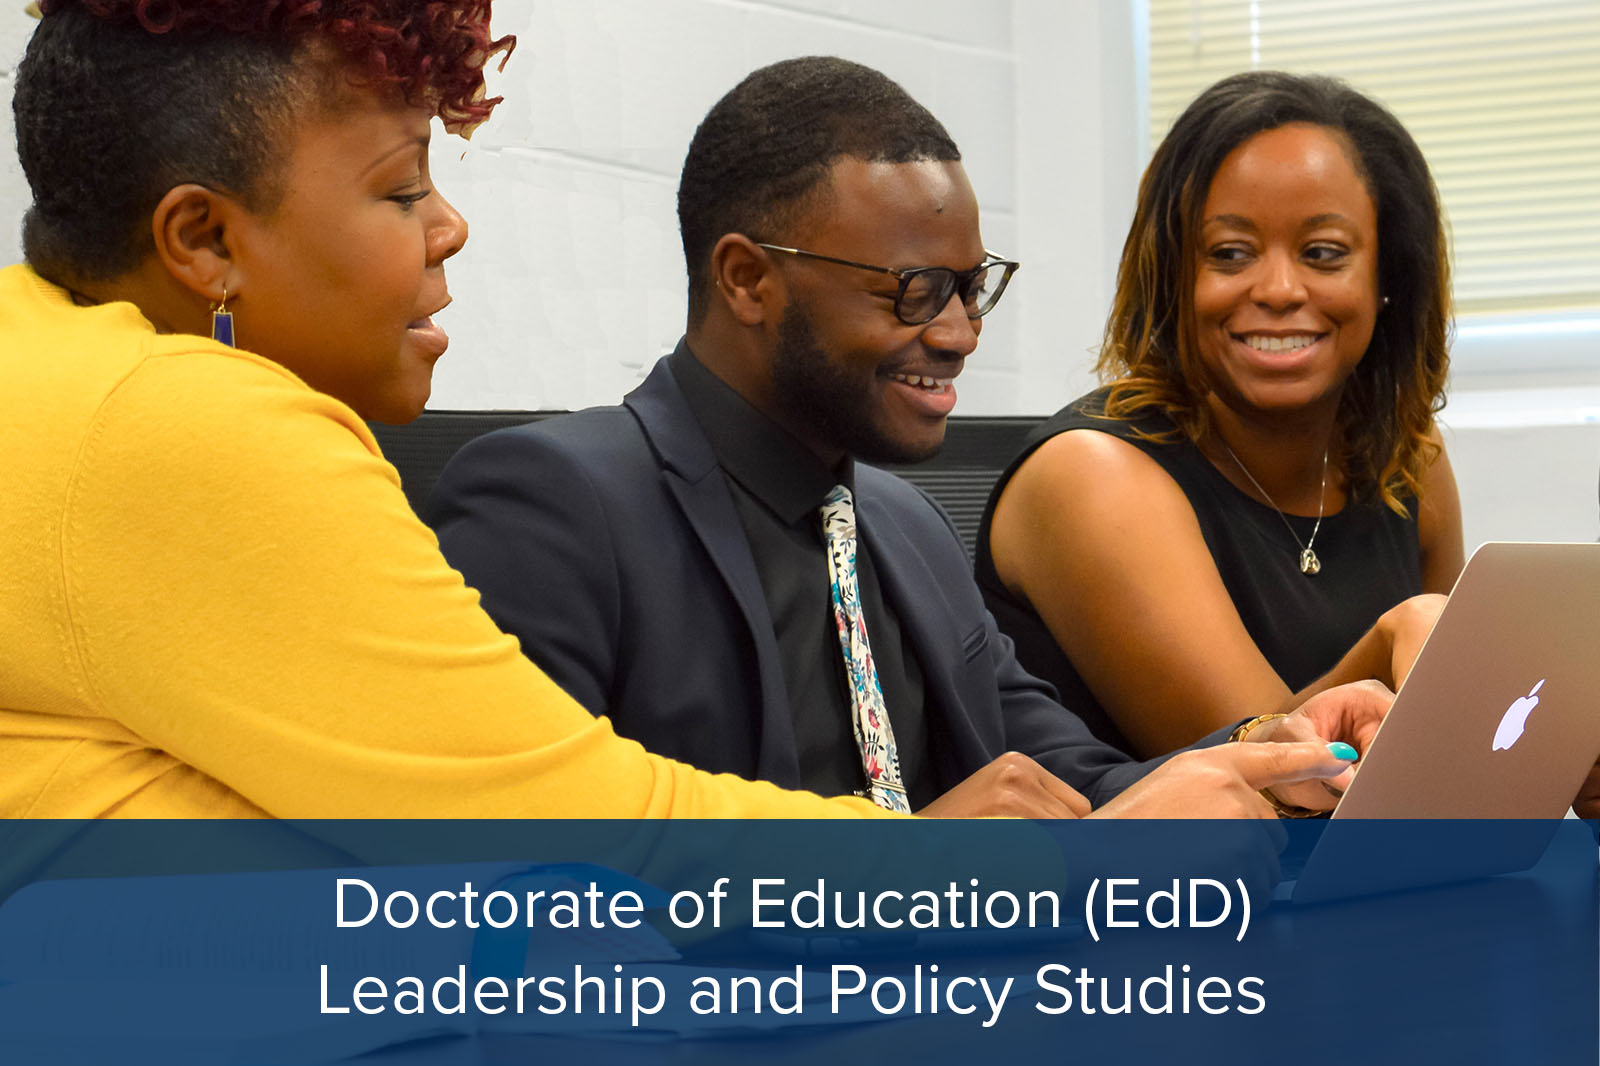 Doctorate of Education (EdD) in Leadership and Policy Studies